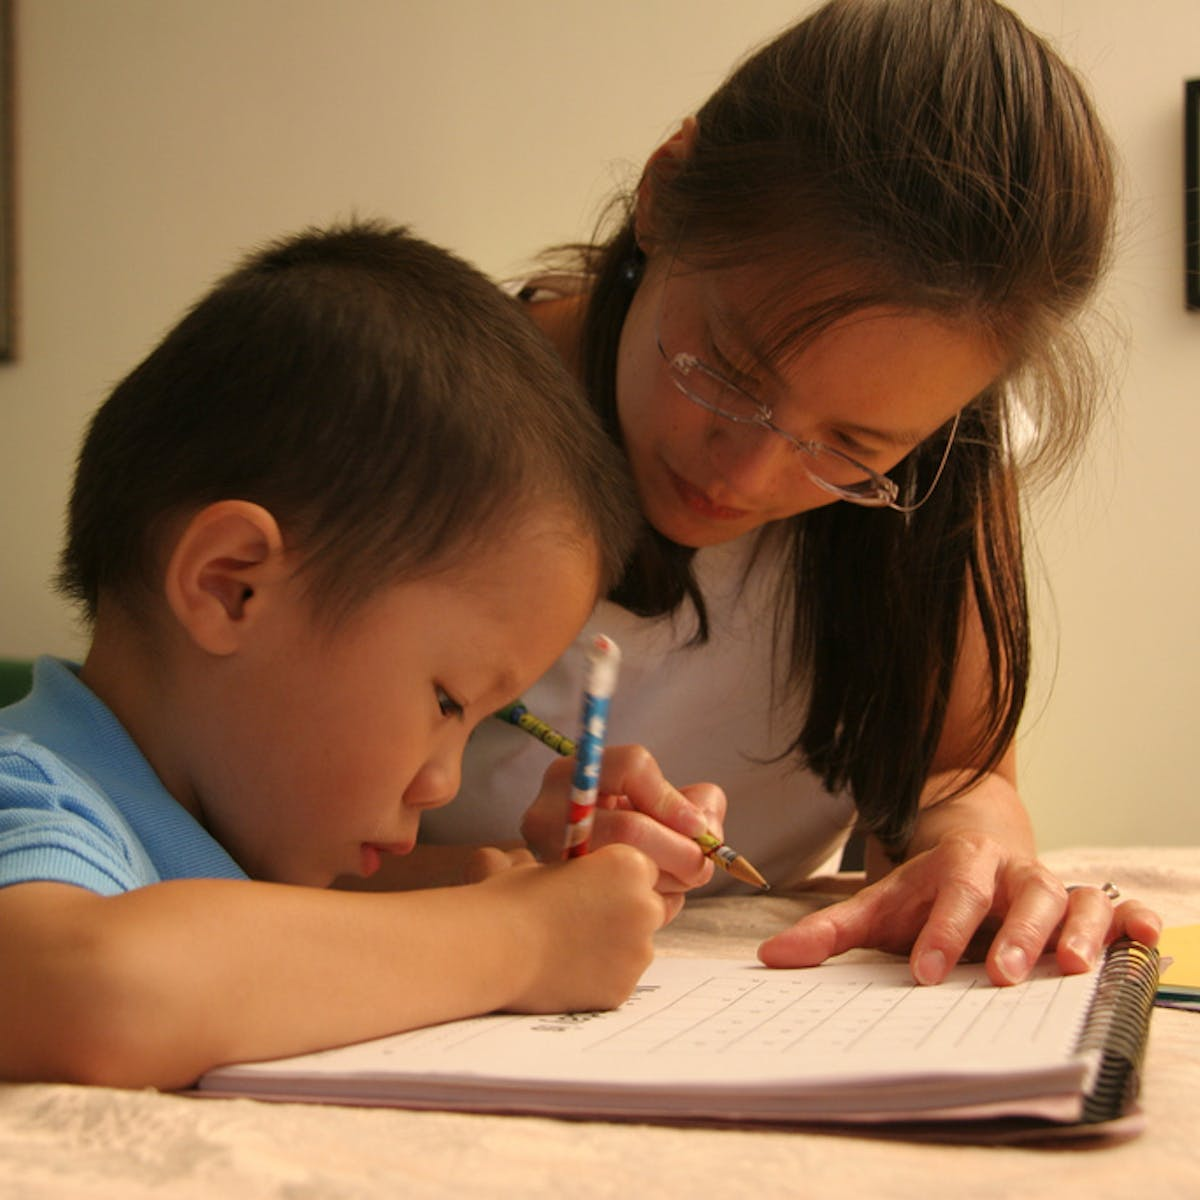 When do children learn to write? Earlier than you might think